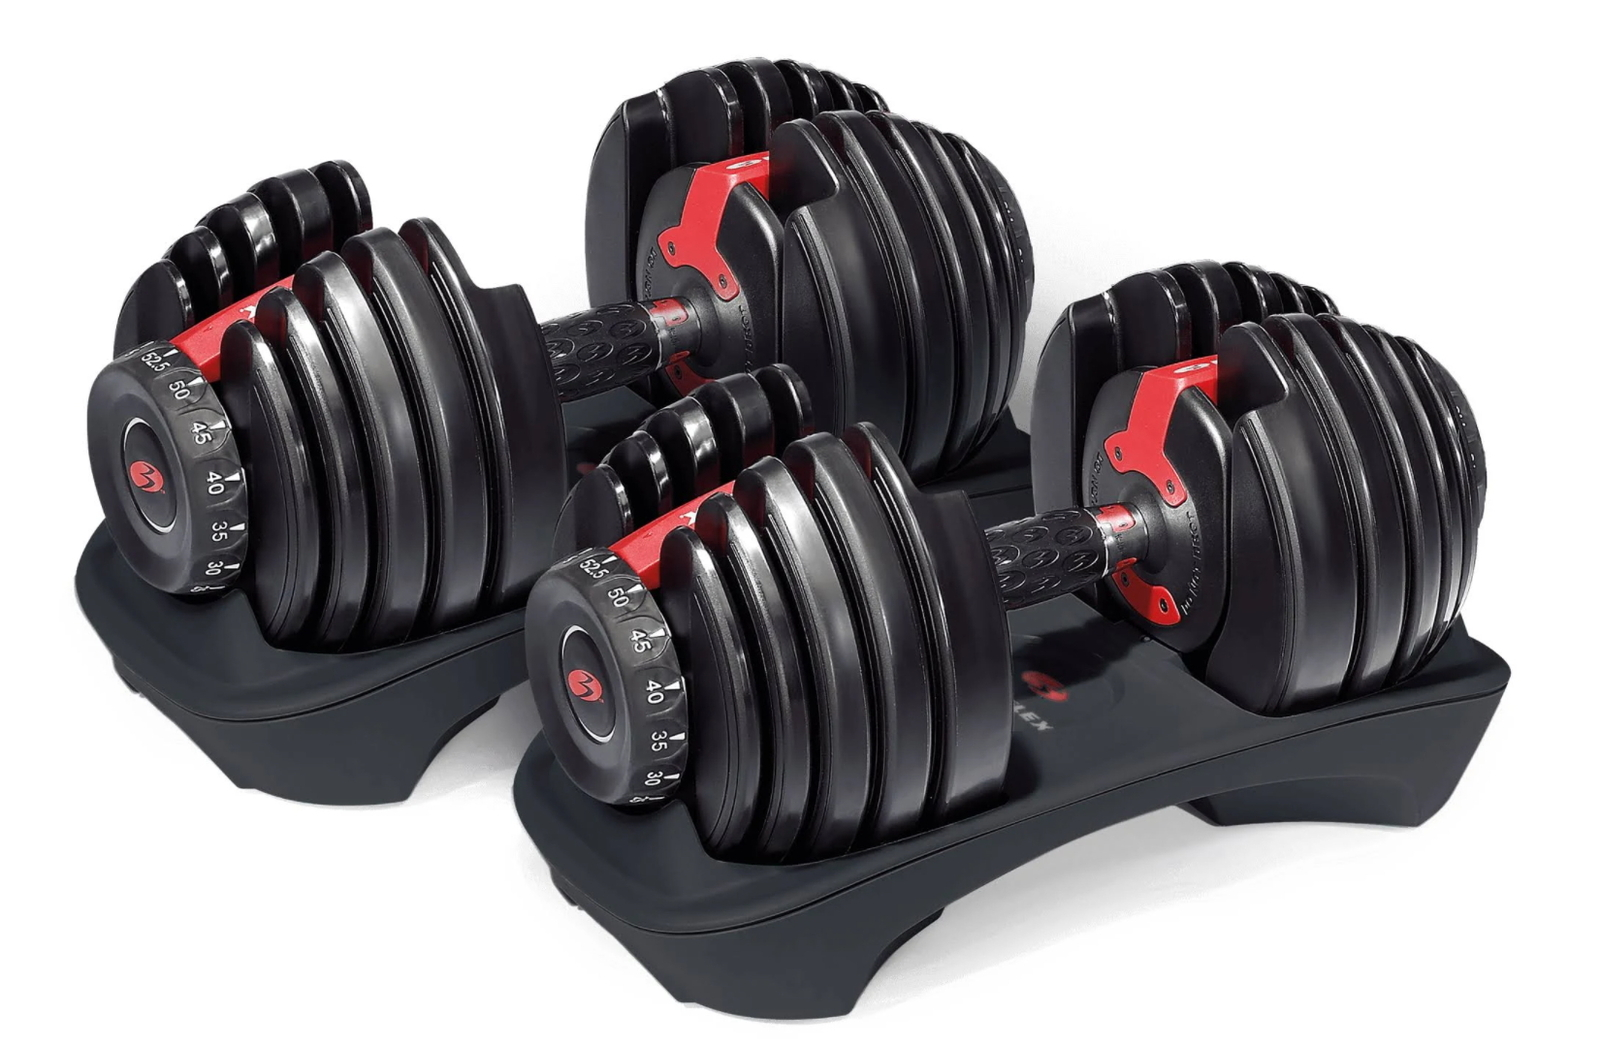 Bowflex SelectTech 552 Adjustable Dumbbell Set - Ready to Ship